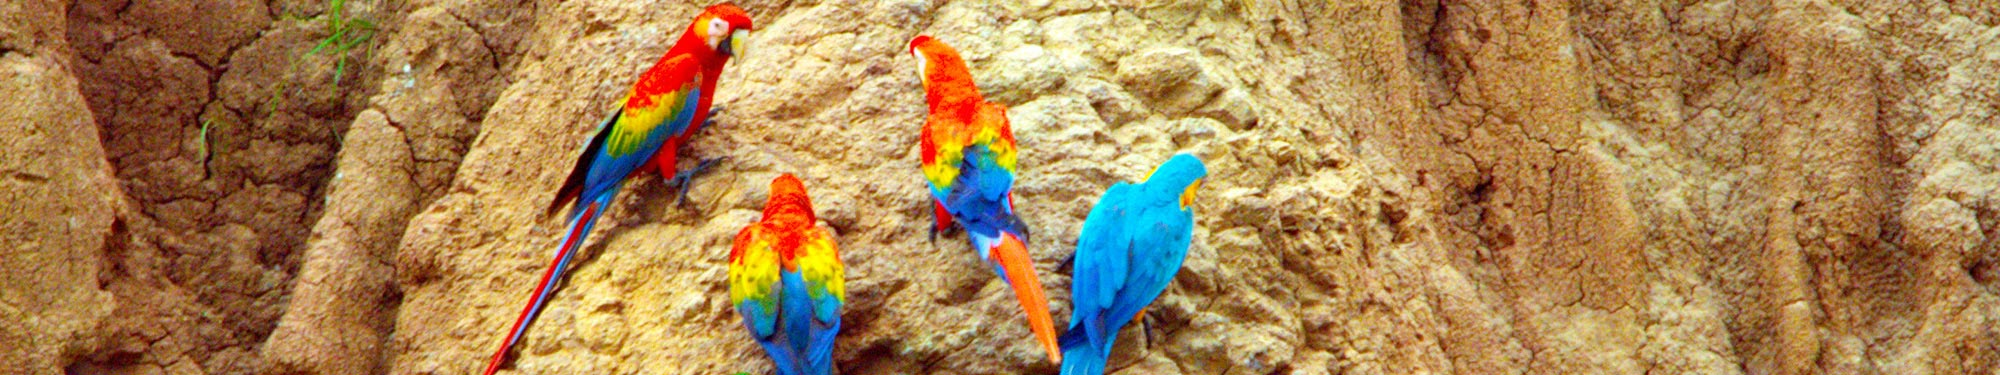 Blue-and-yellow Macaws and Scarlet Macaws at the clay lick